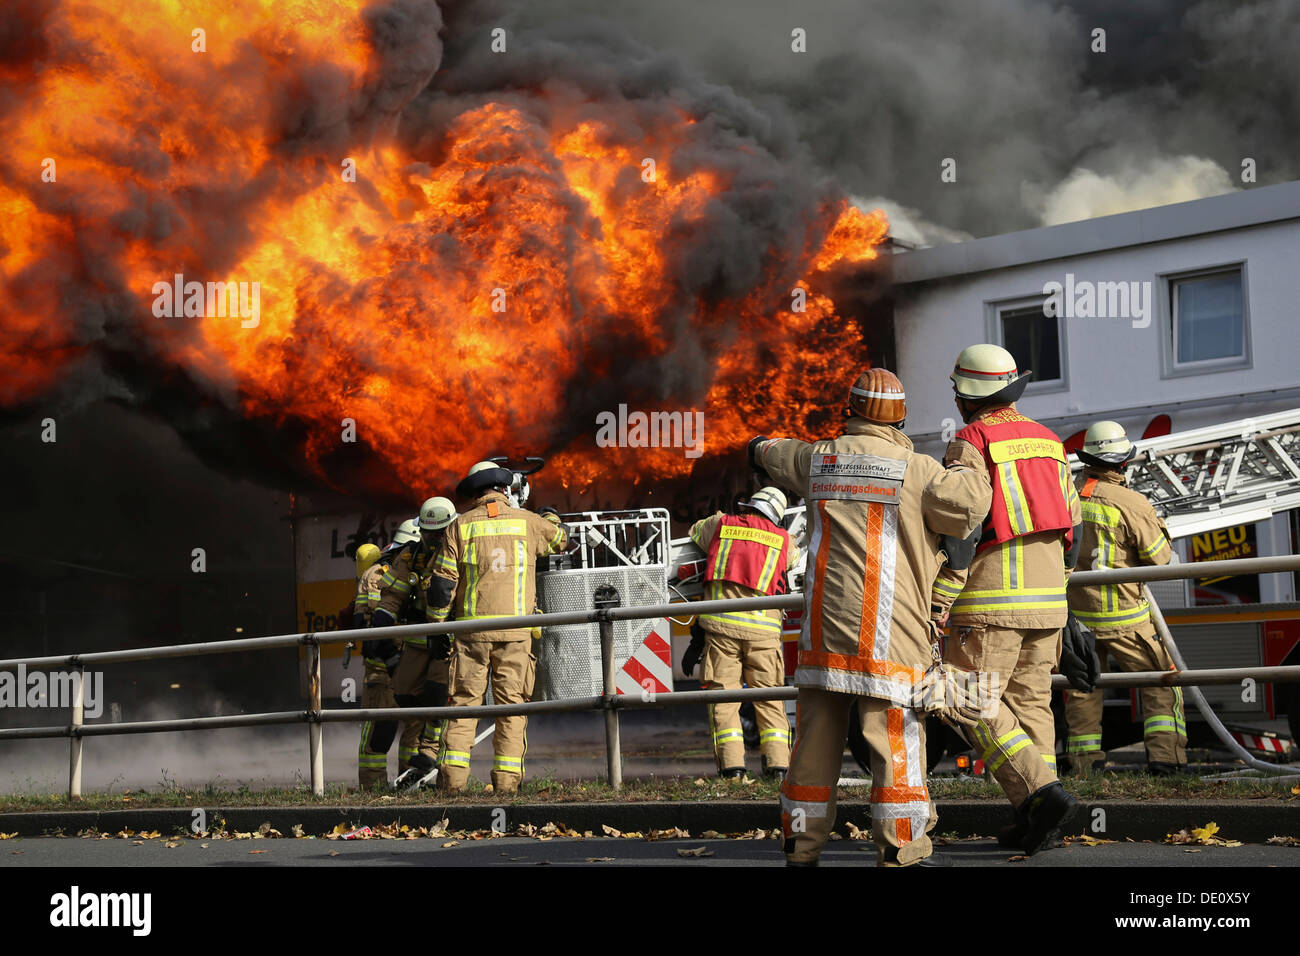 More than 140 firefighters extinguishing a burning carpet warehouse in Berlin-Reinickendorf, Berlin - Stock Image